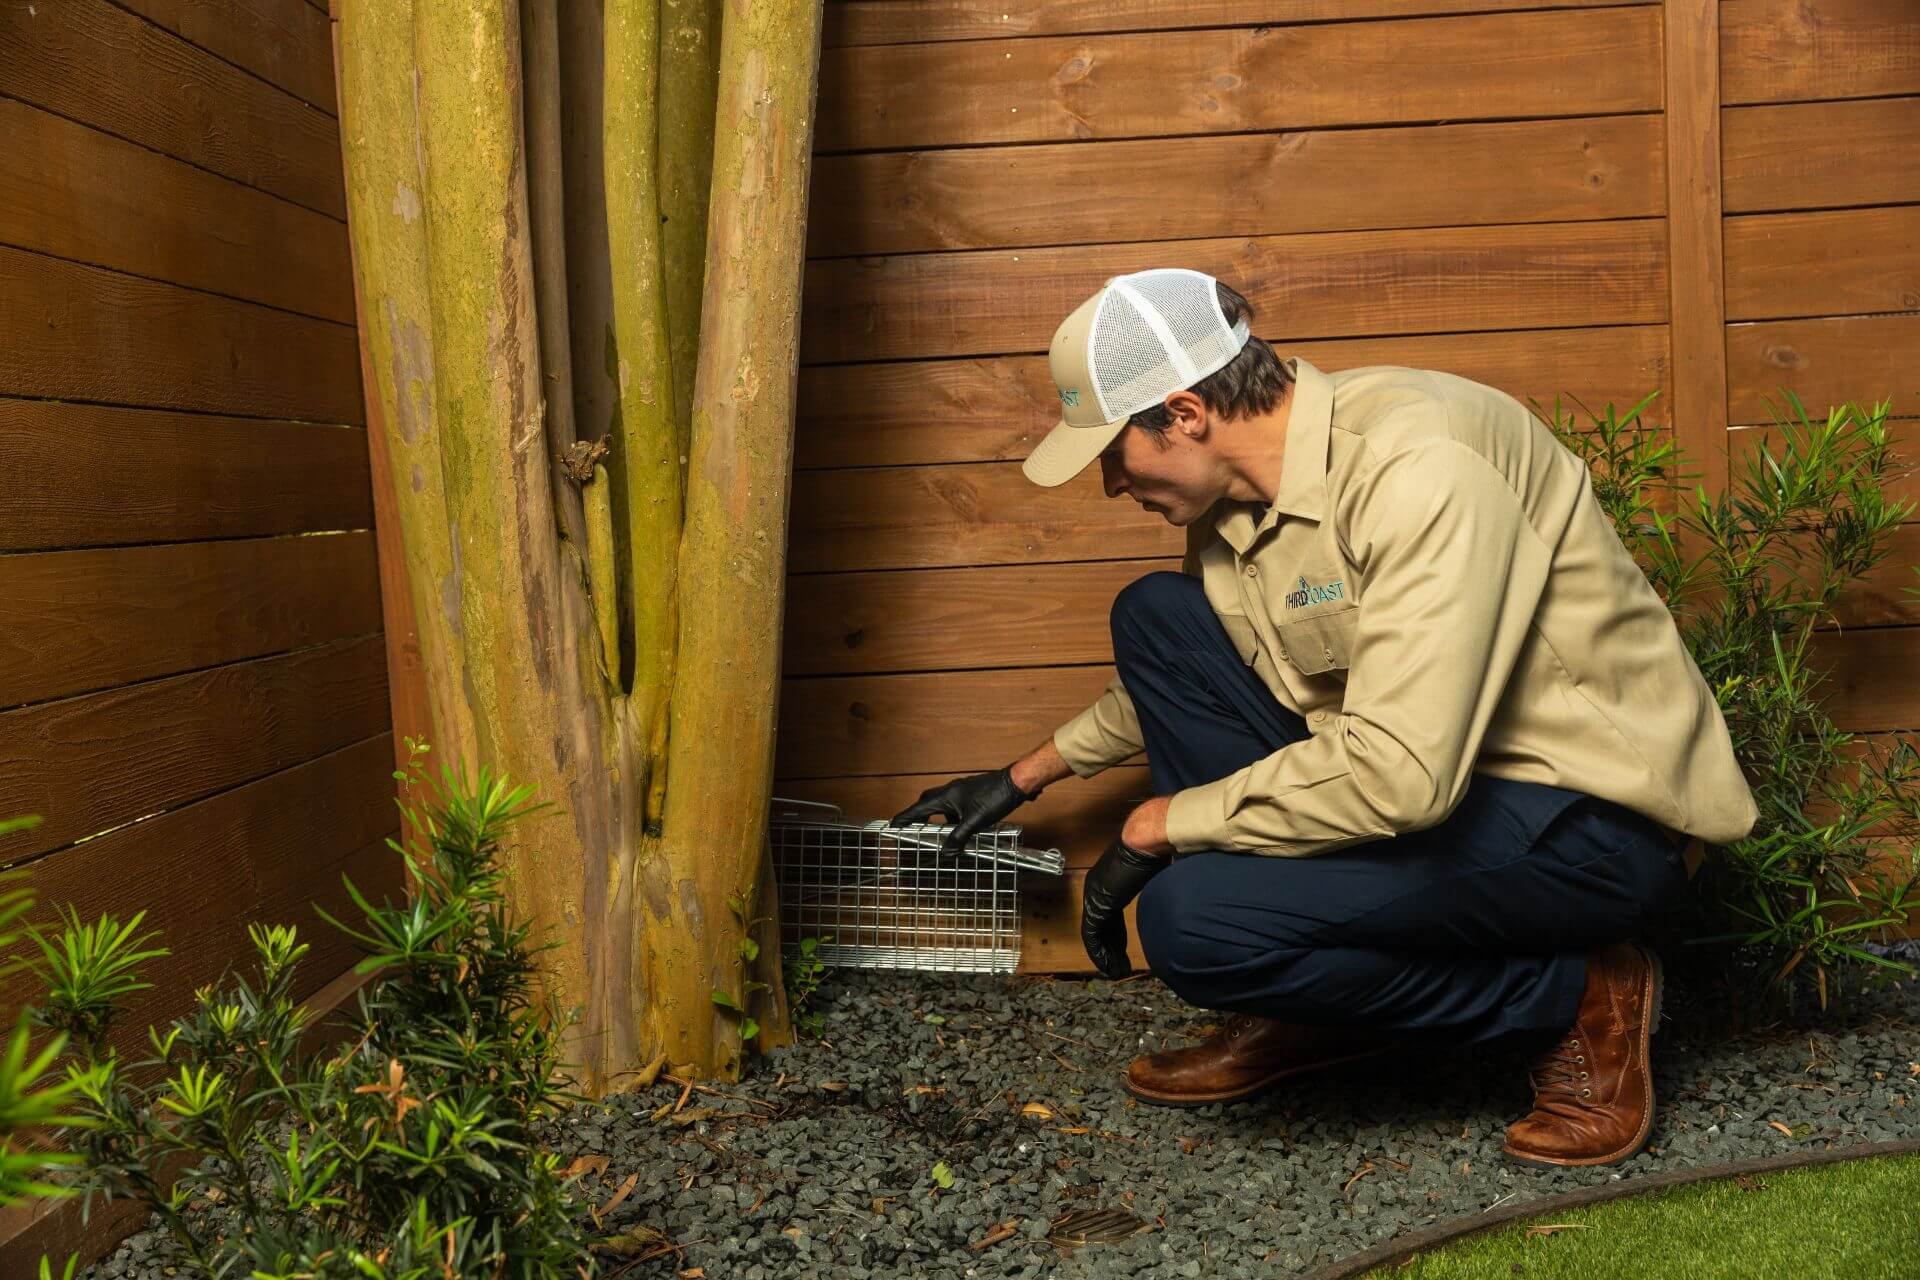 Rodent Control Houston